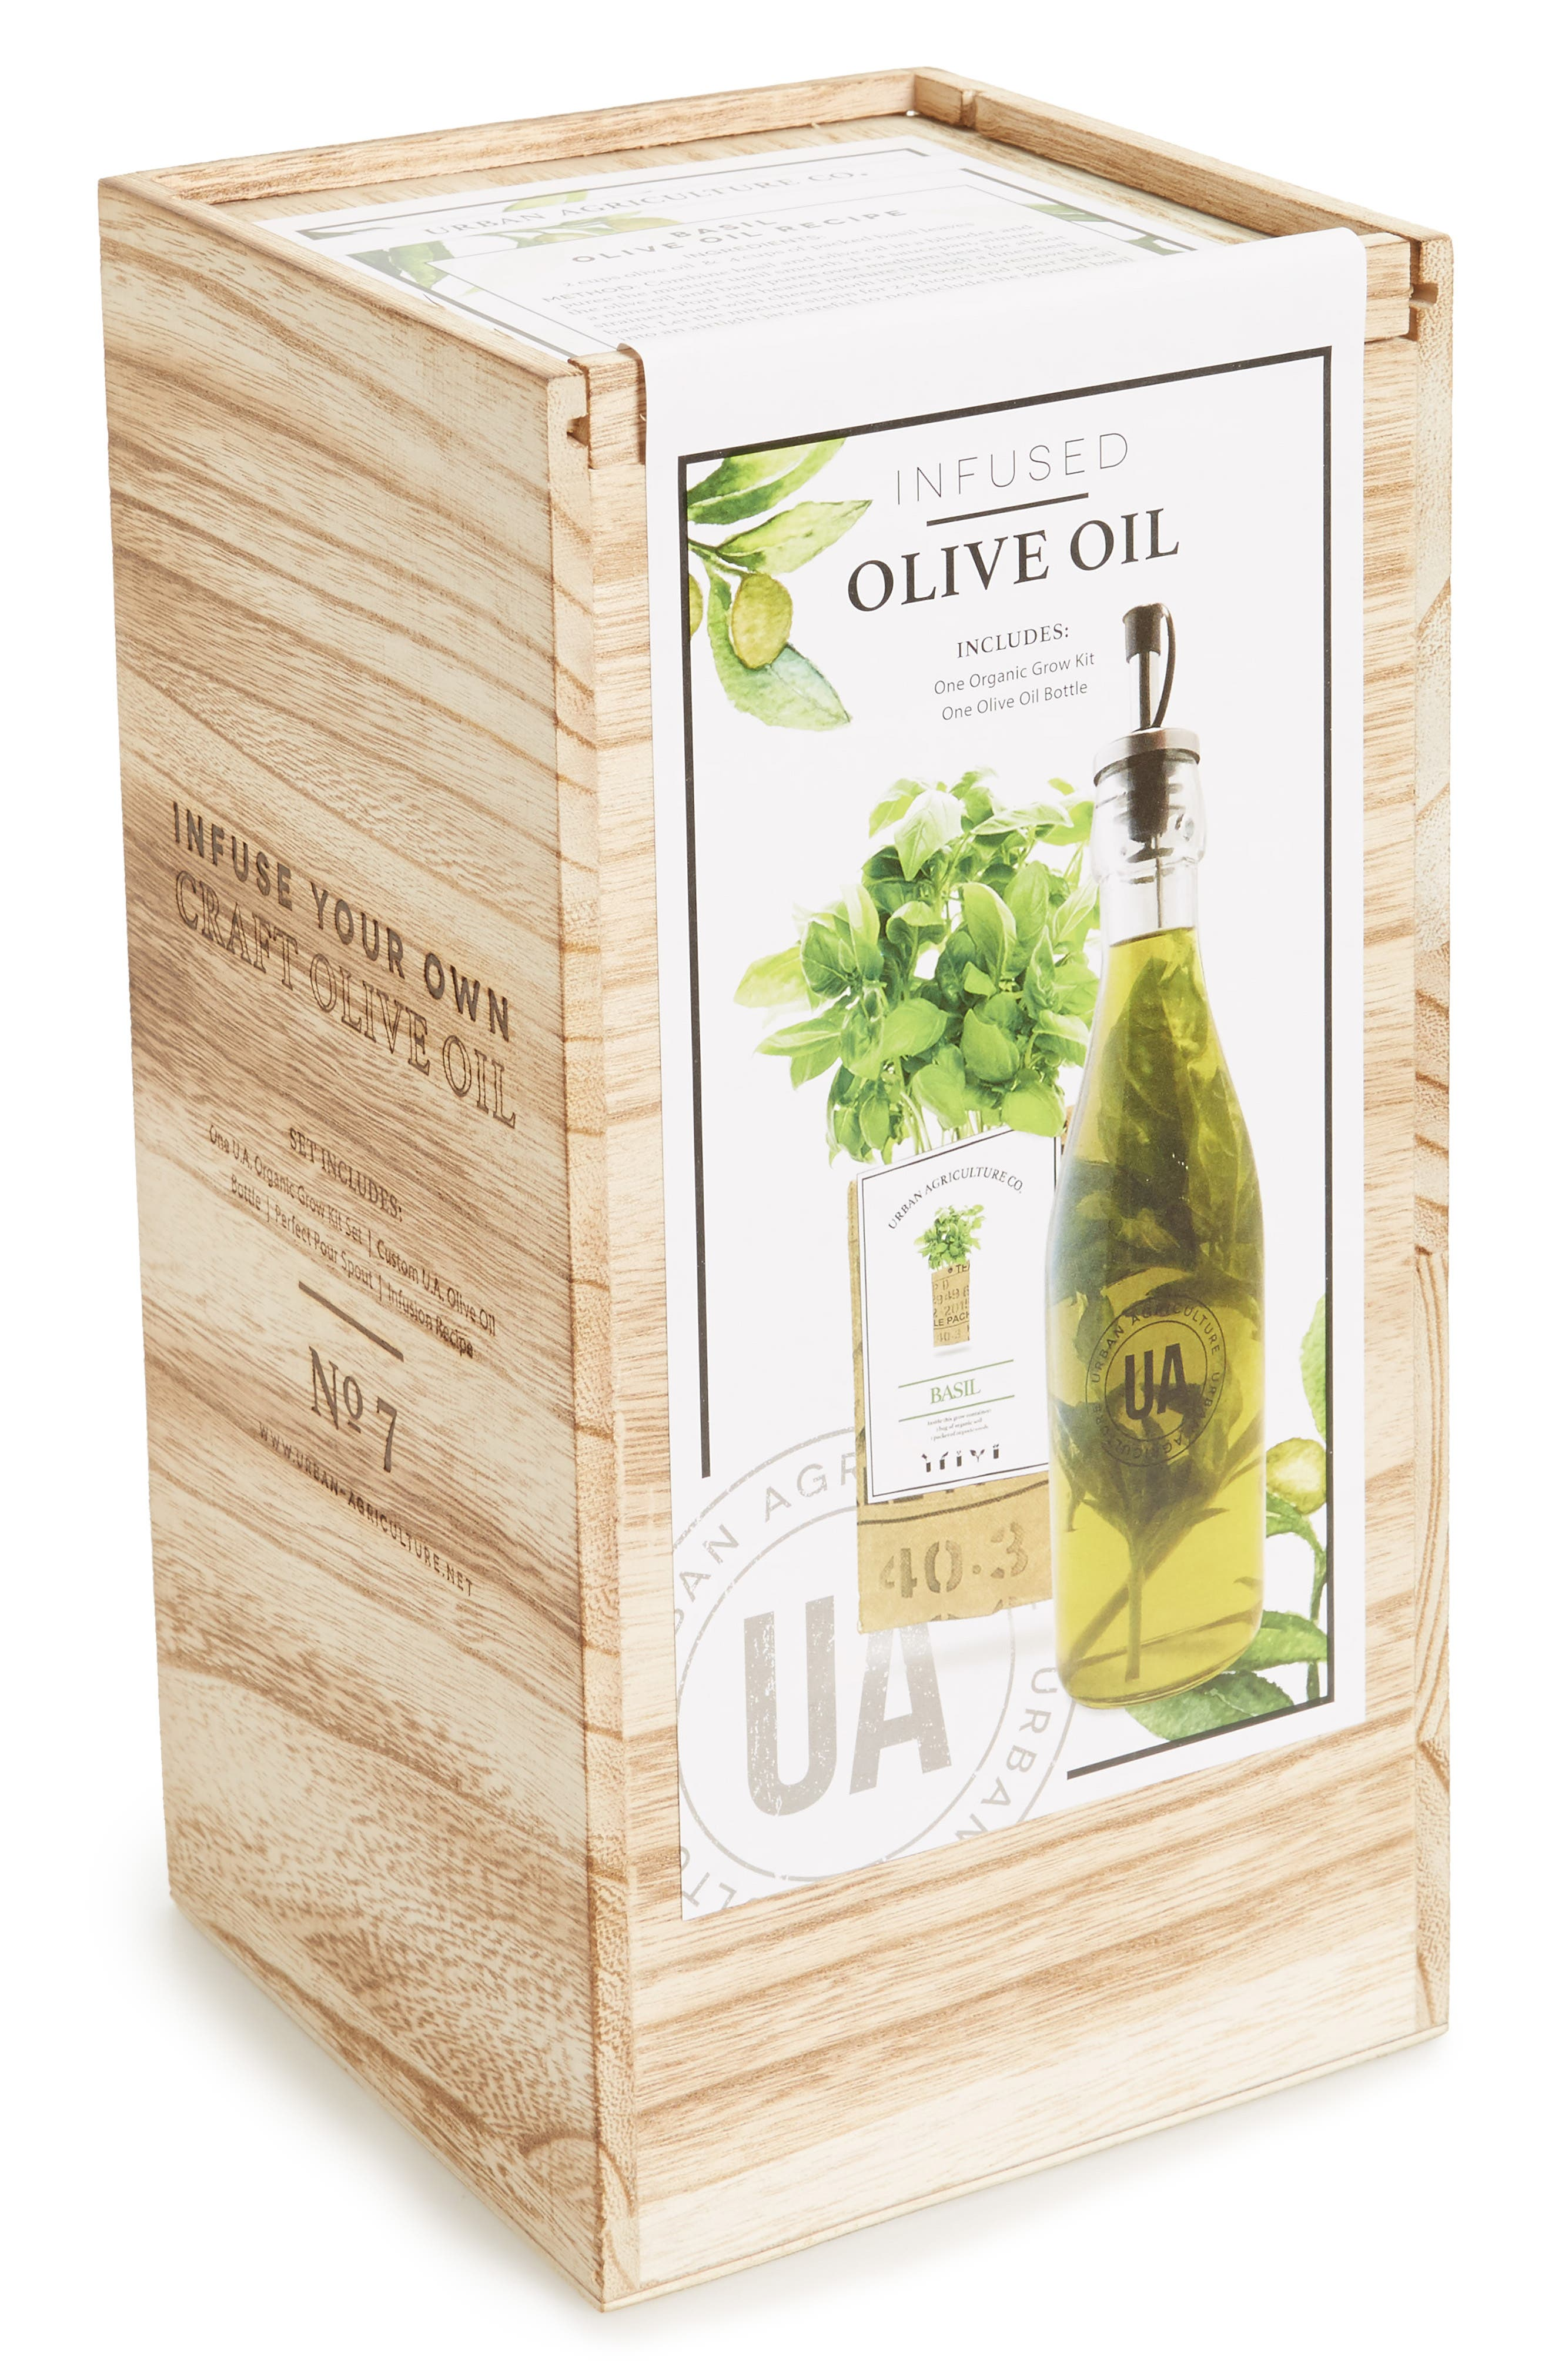 The Urban Agriculture Co. Infused Olive Oil Kit